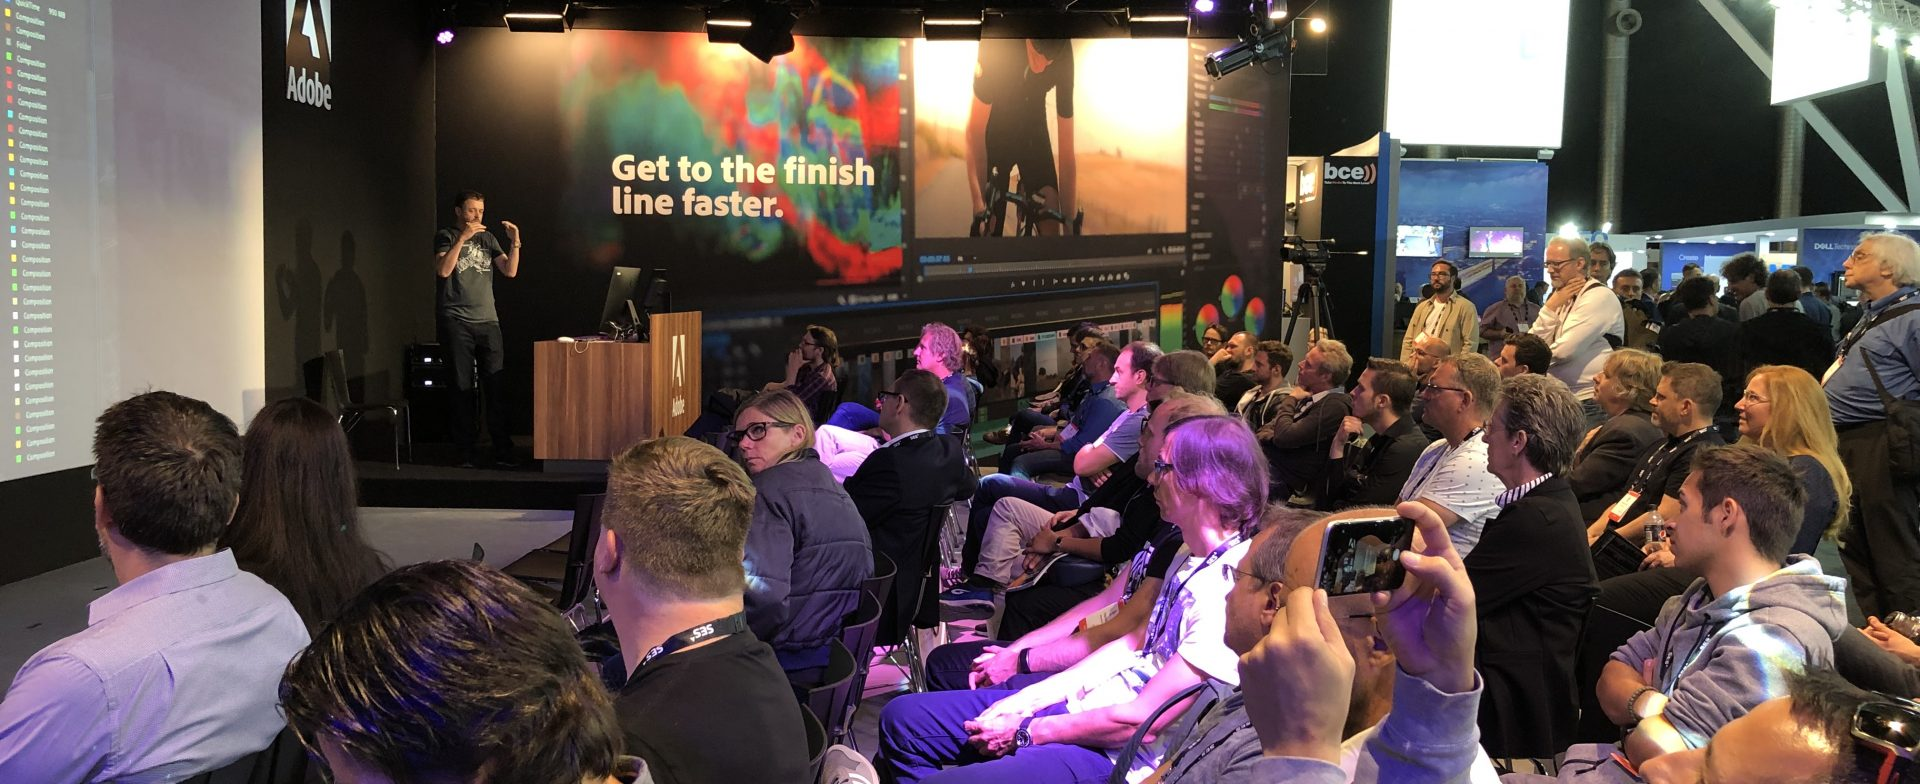 Technical setup and production for Adobe IBC 2019